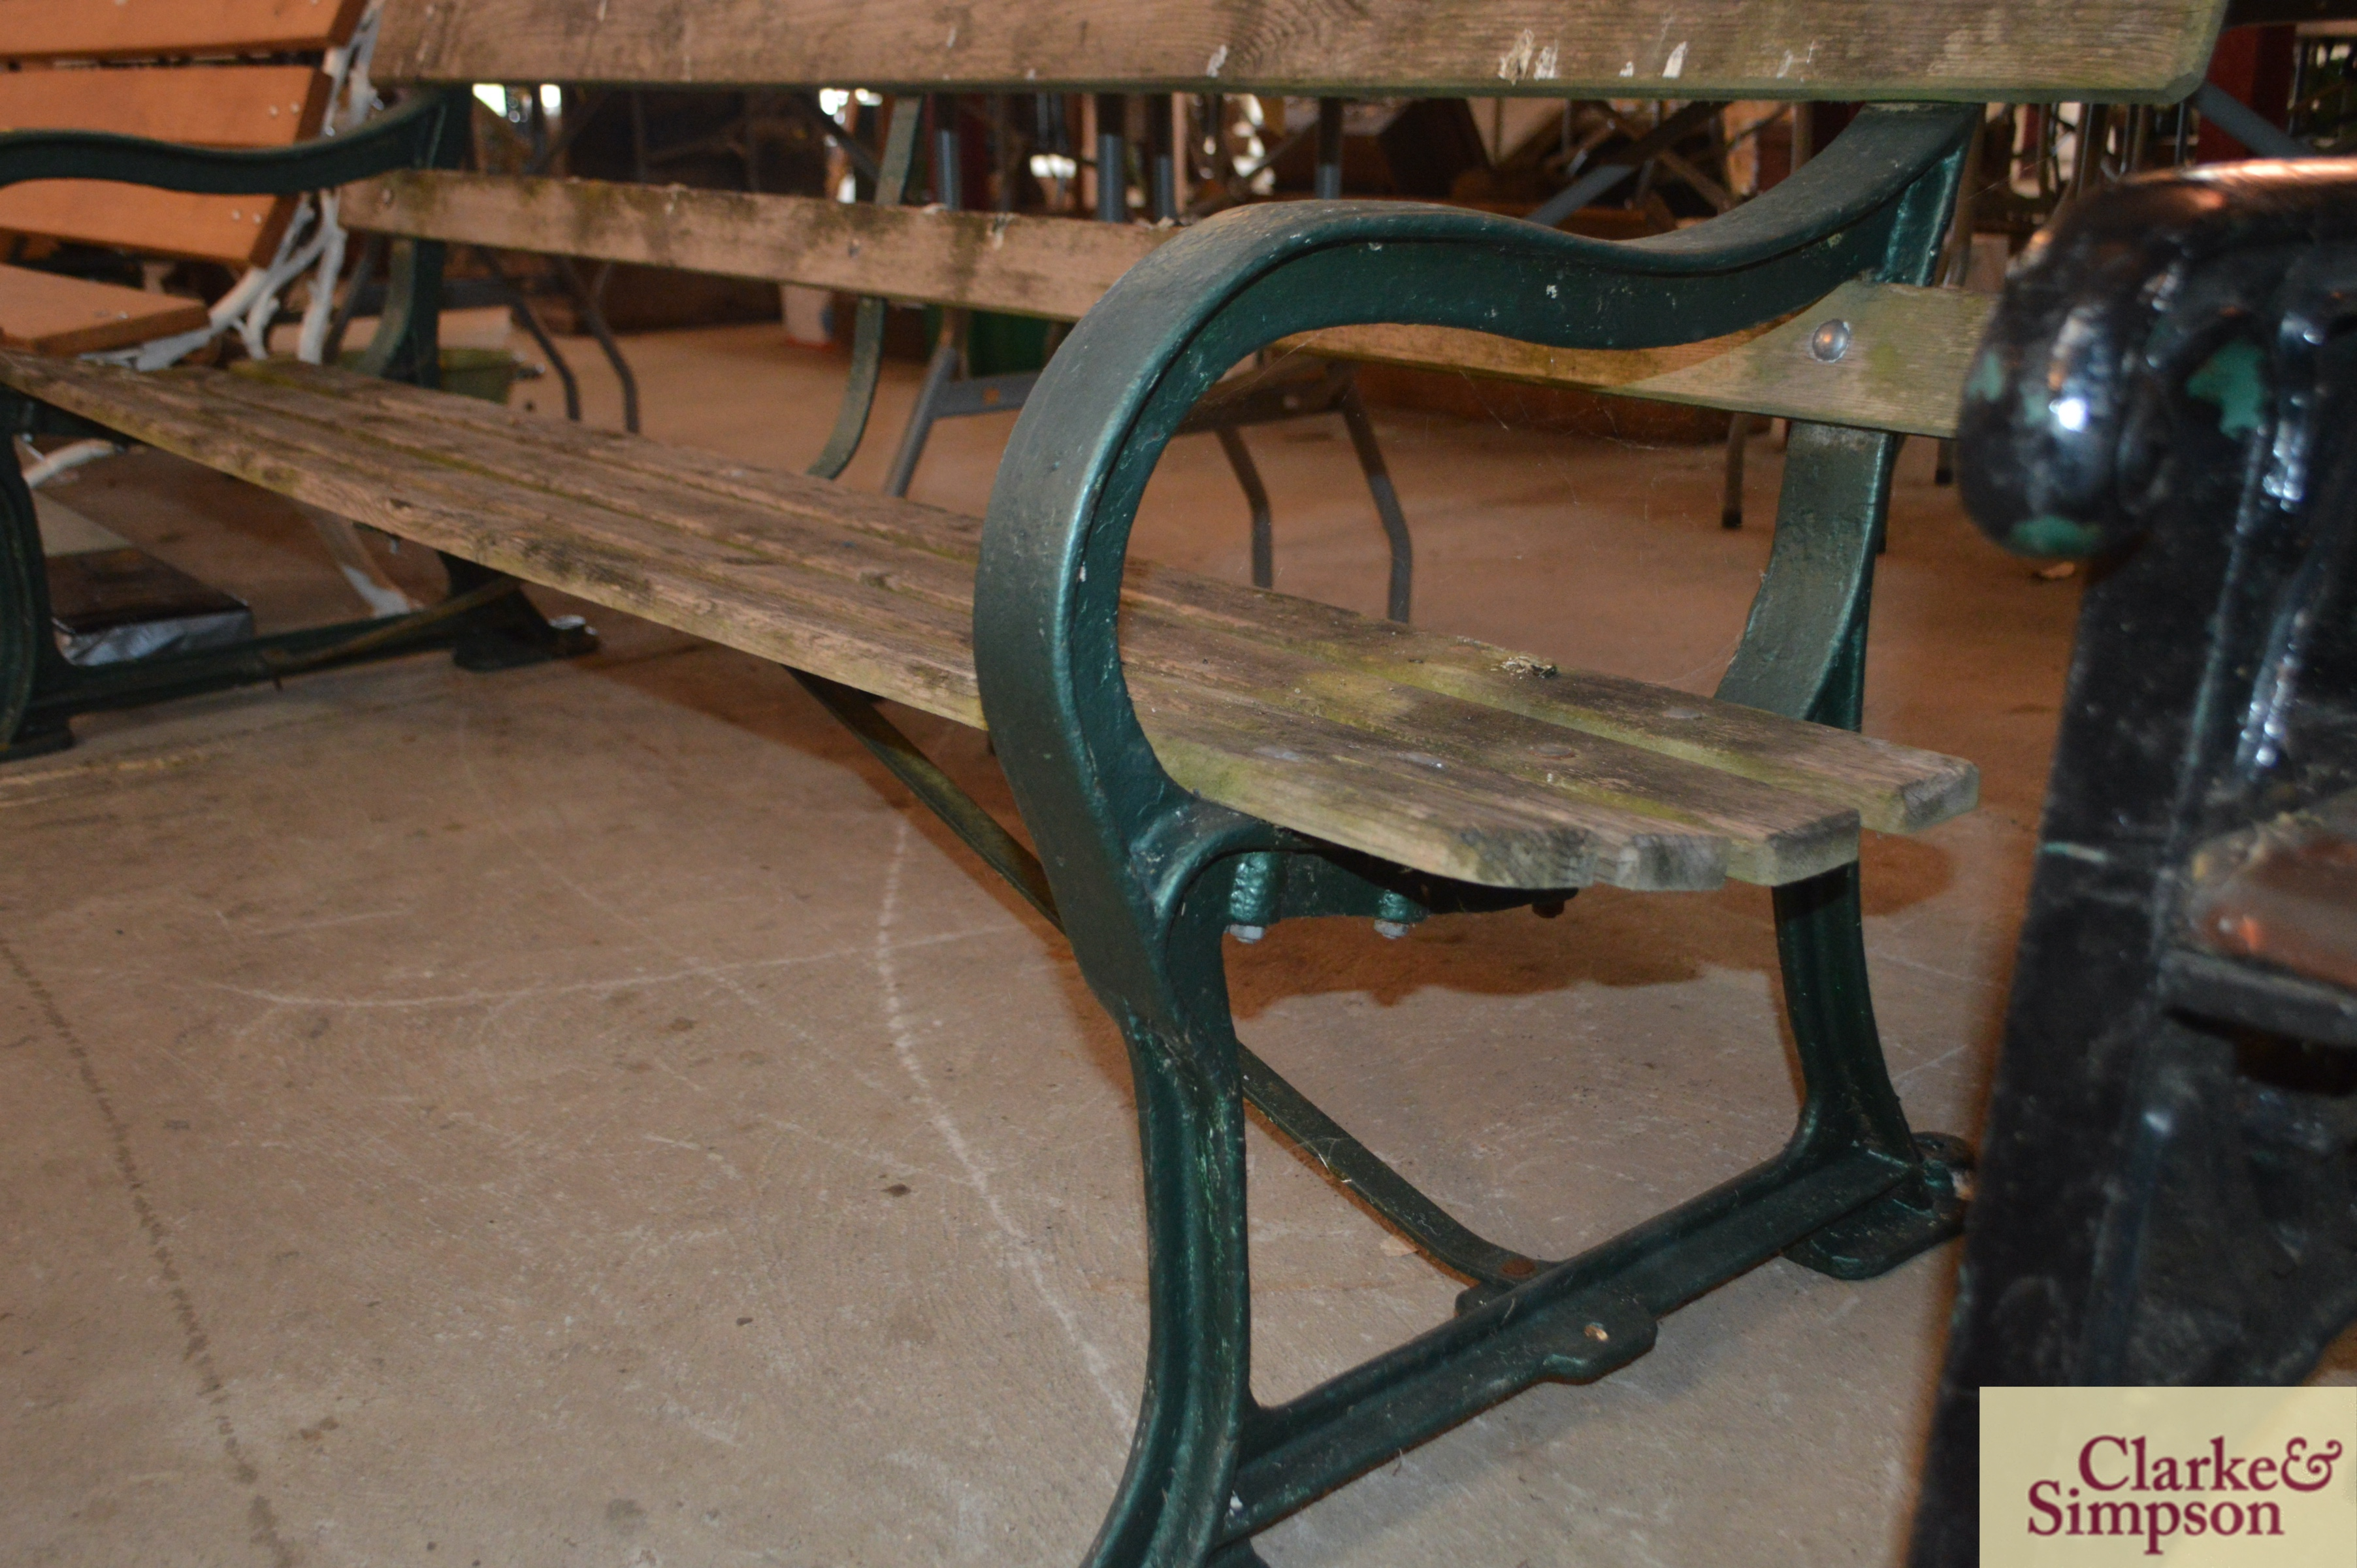 A cast iron and wooden slatted railway type bench - Image 4 of 4